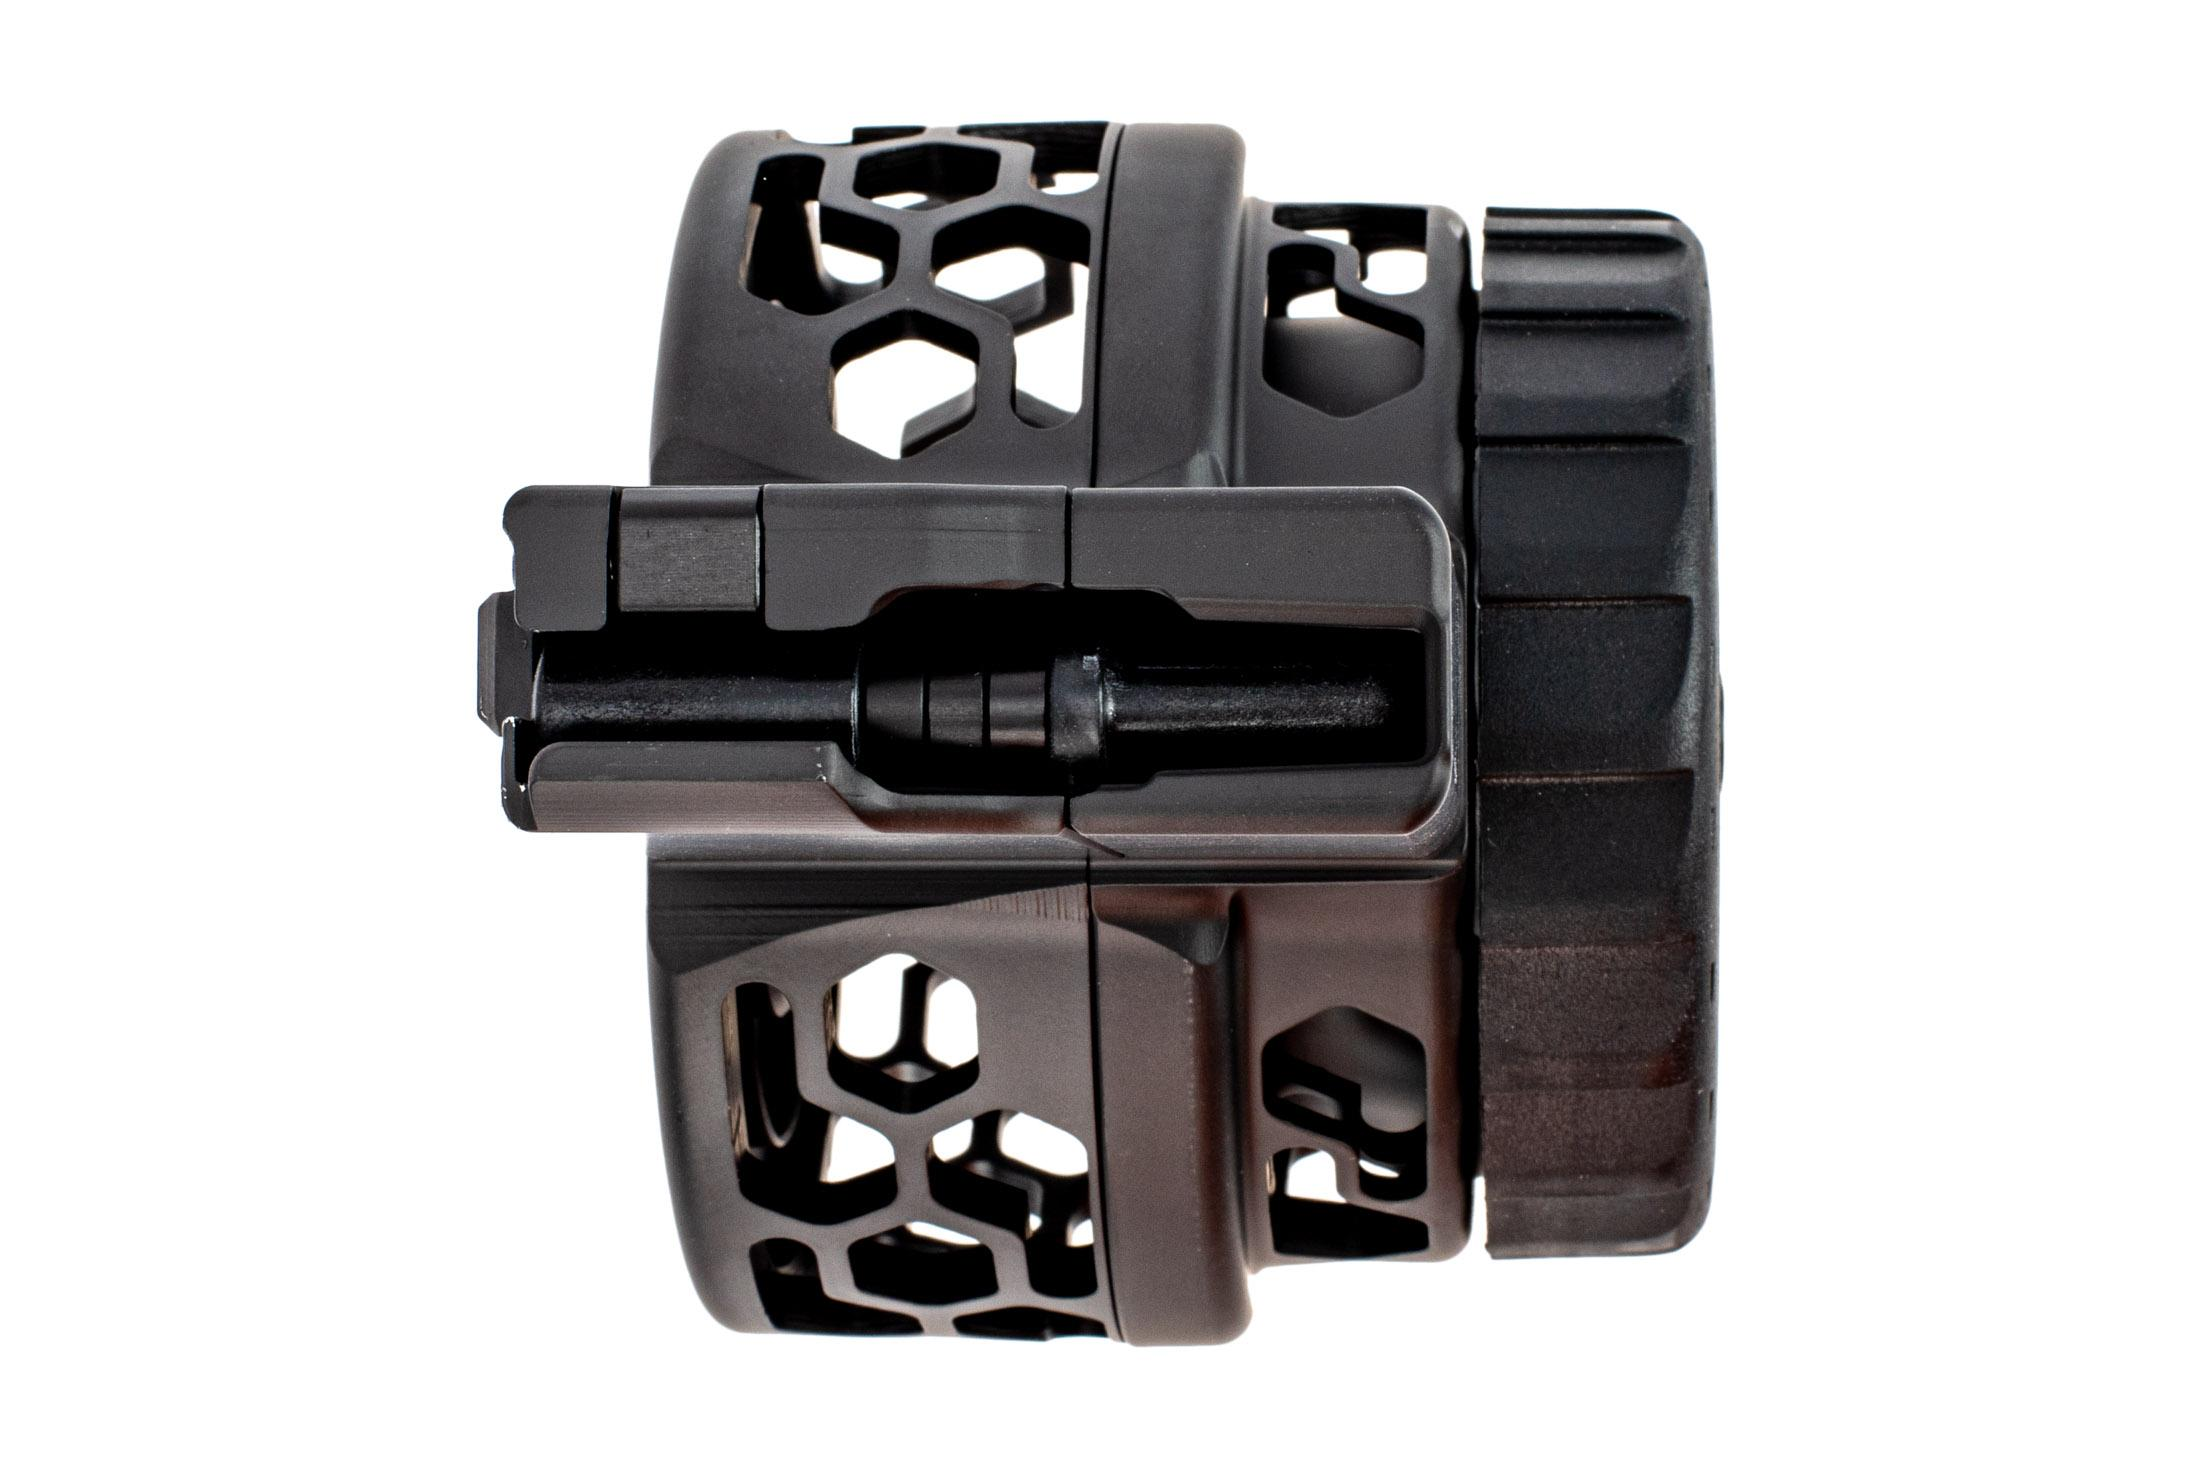 X Products 50 round AR-15 drum magazine has a compact reliable design for 5.56 nato and hex pattern skeletonizing.